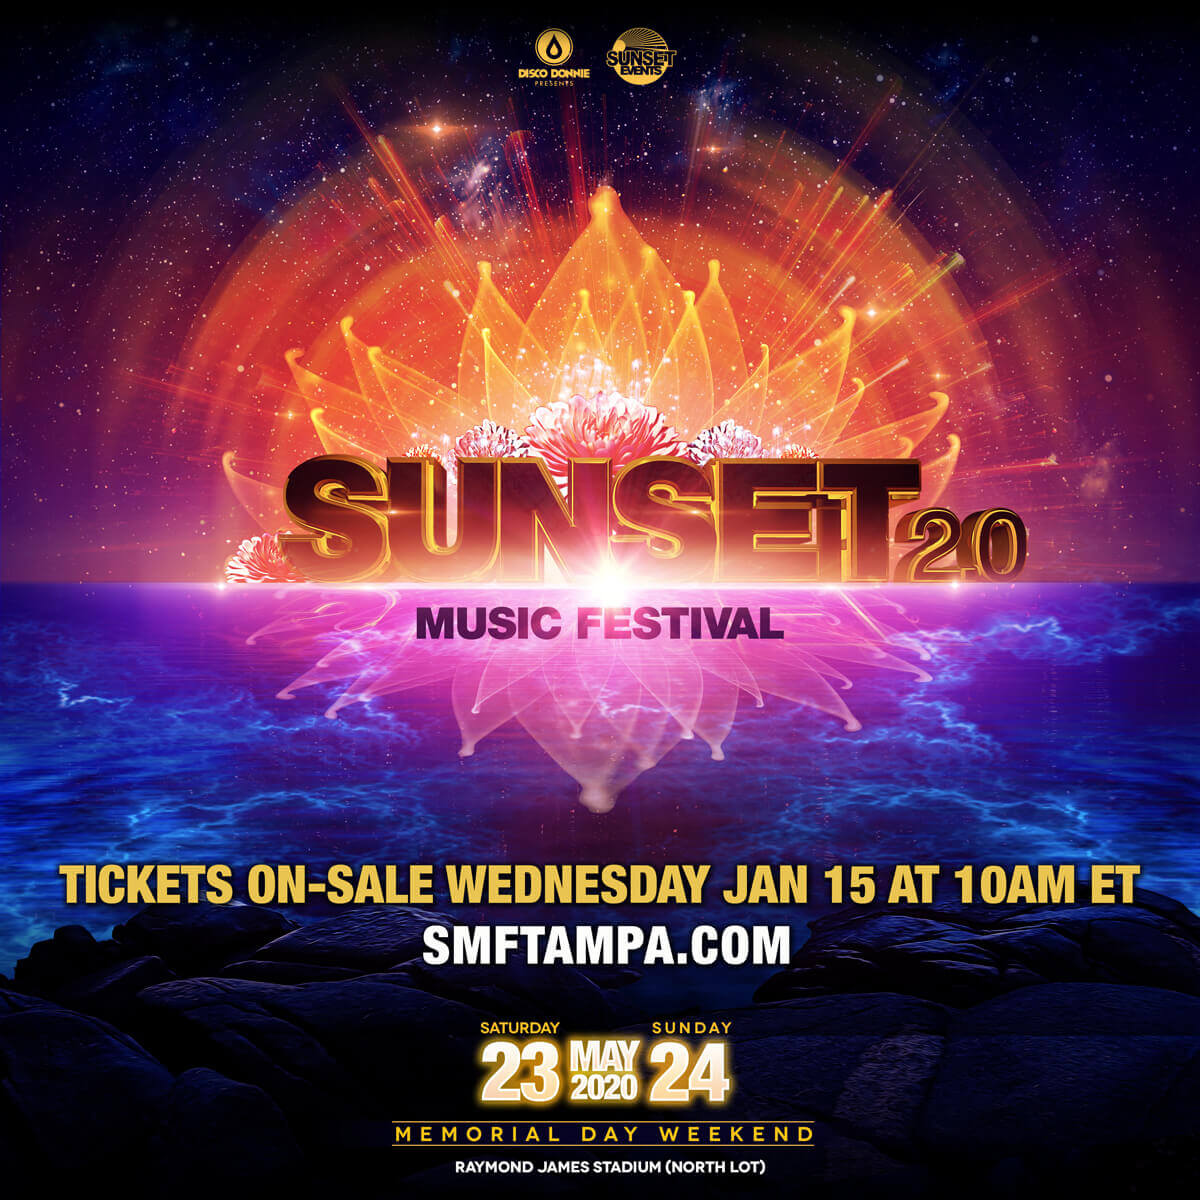 Sunset Music Festival Payment Plan Discount Promo Code,SMF Festival, 2020 Discount Tickets, Tampa Florida, Lineup, GA, May, Saturday, Sunday,